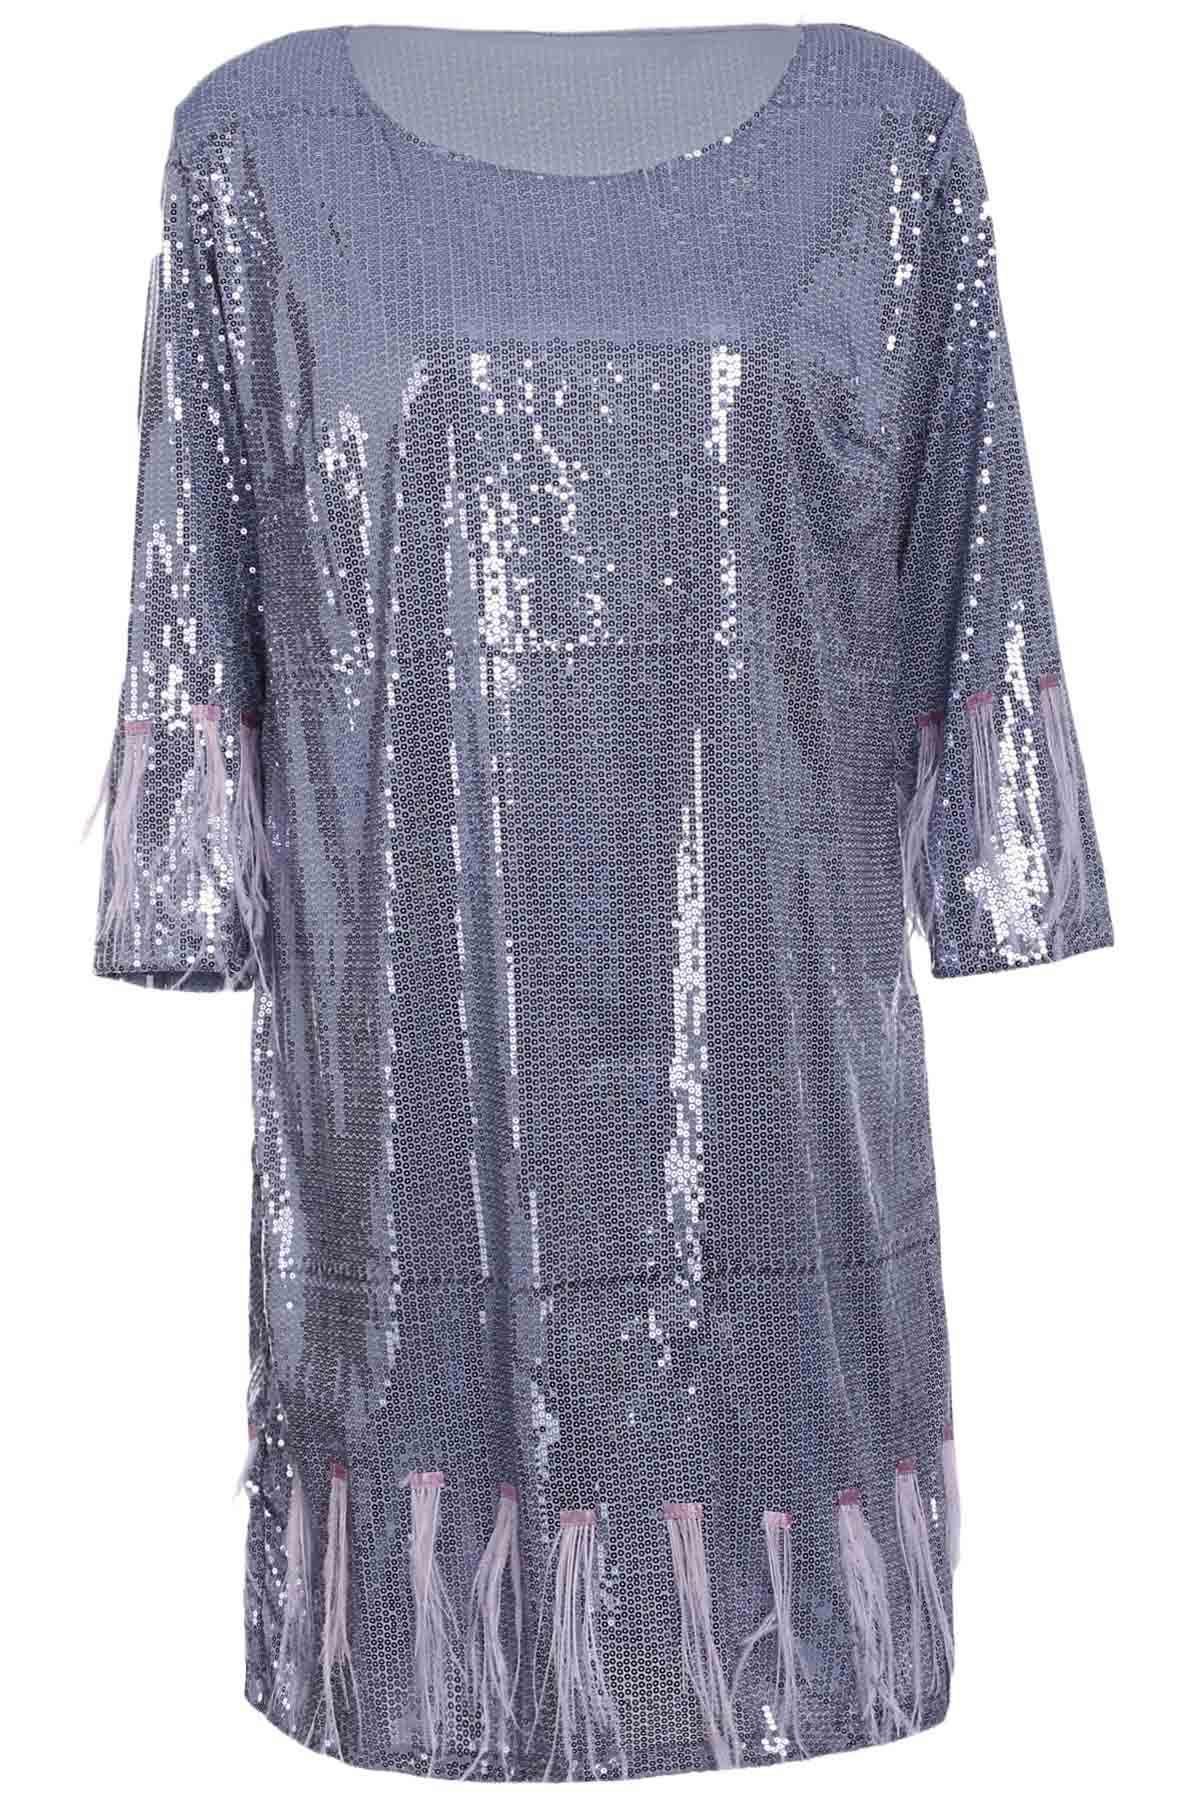 Stylish Women's Scoop Neck 3/4 Sleeve Fringed Sequined Dress - SILVER XL